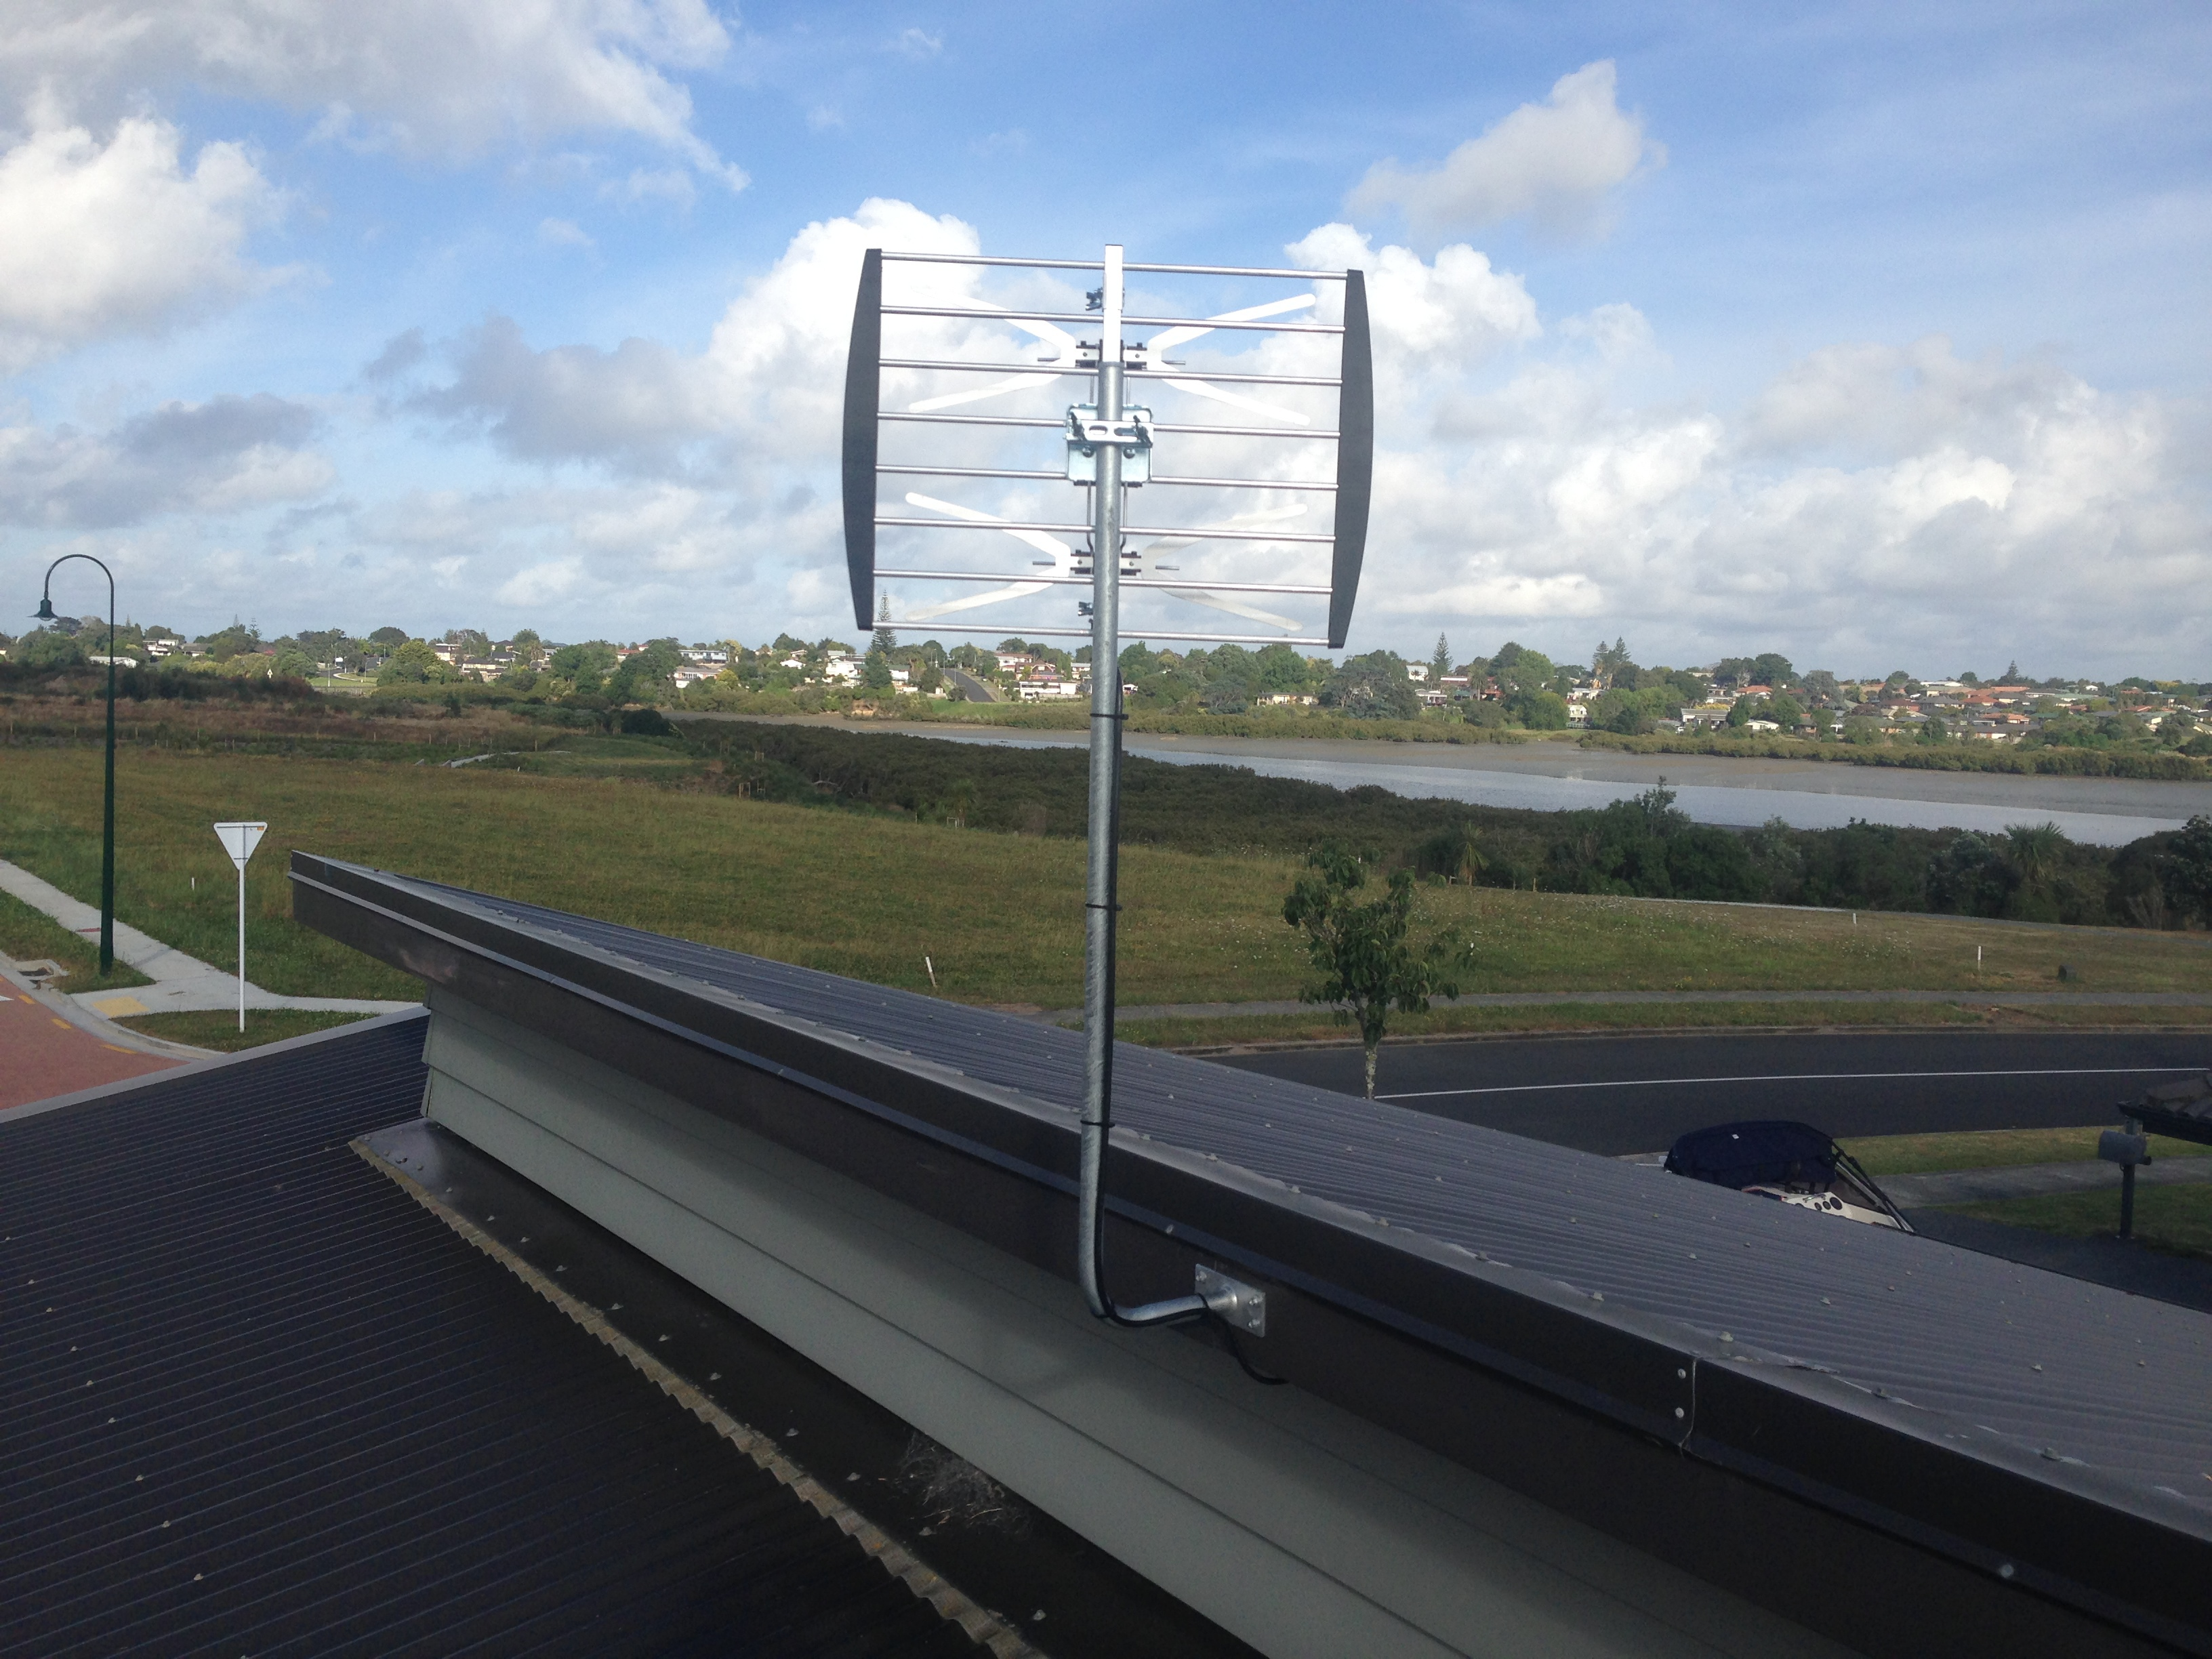 TV home reception aerial, with addictional mounted UHF plugin antenna to improve UHF signals